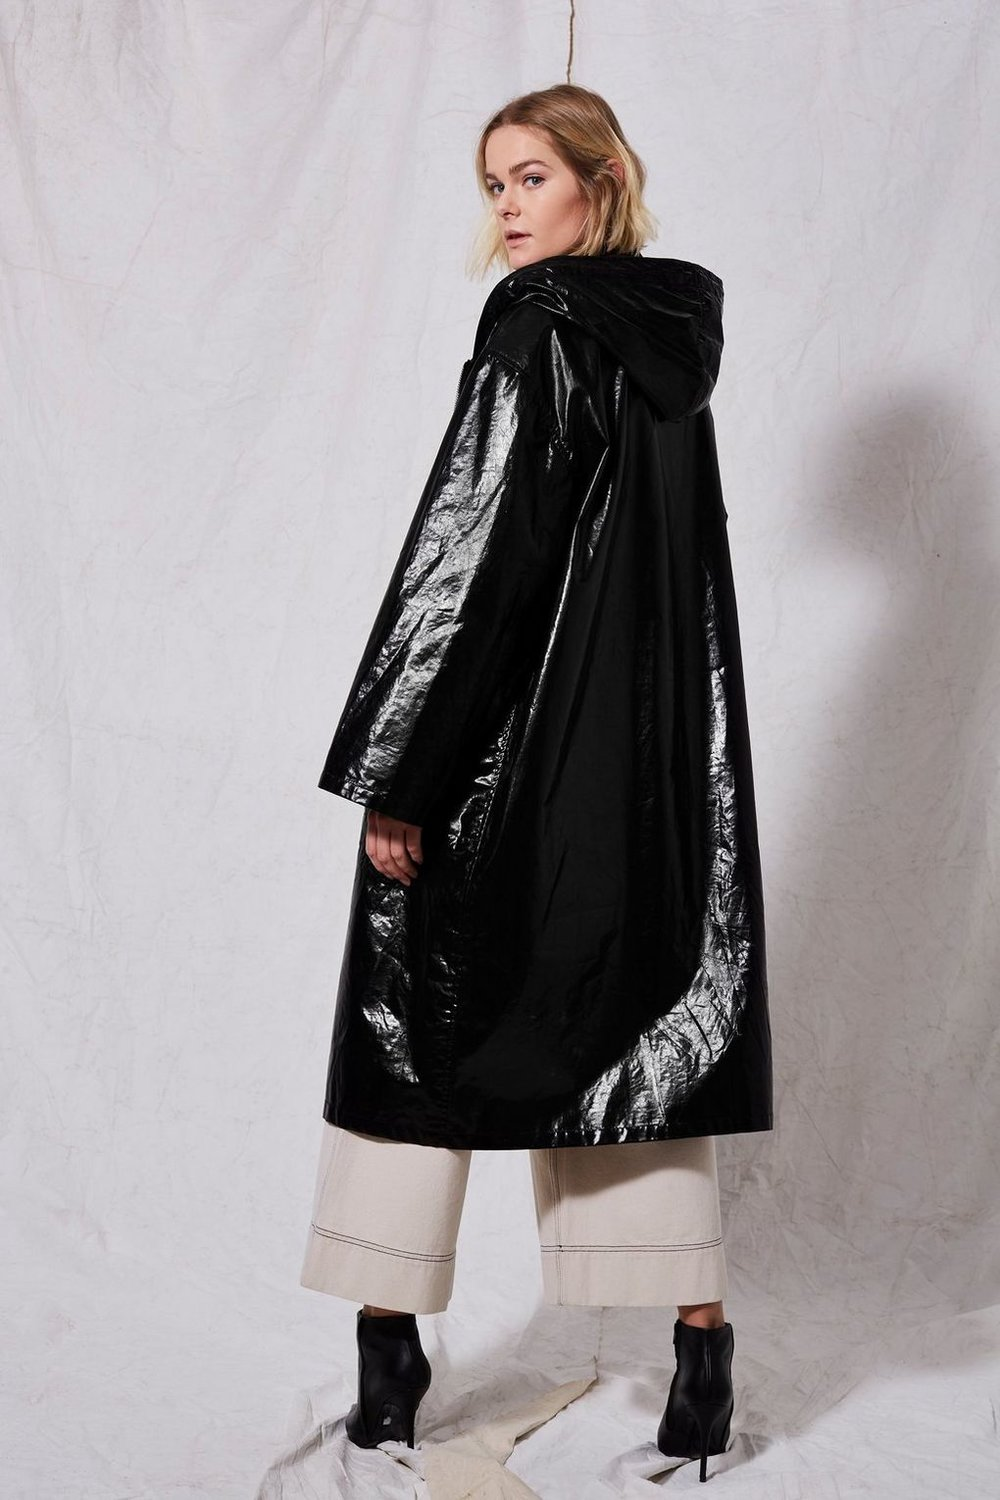 10.  Topshop Vinyl Raincoat by Boutique  - $230